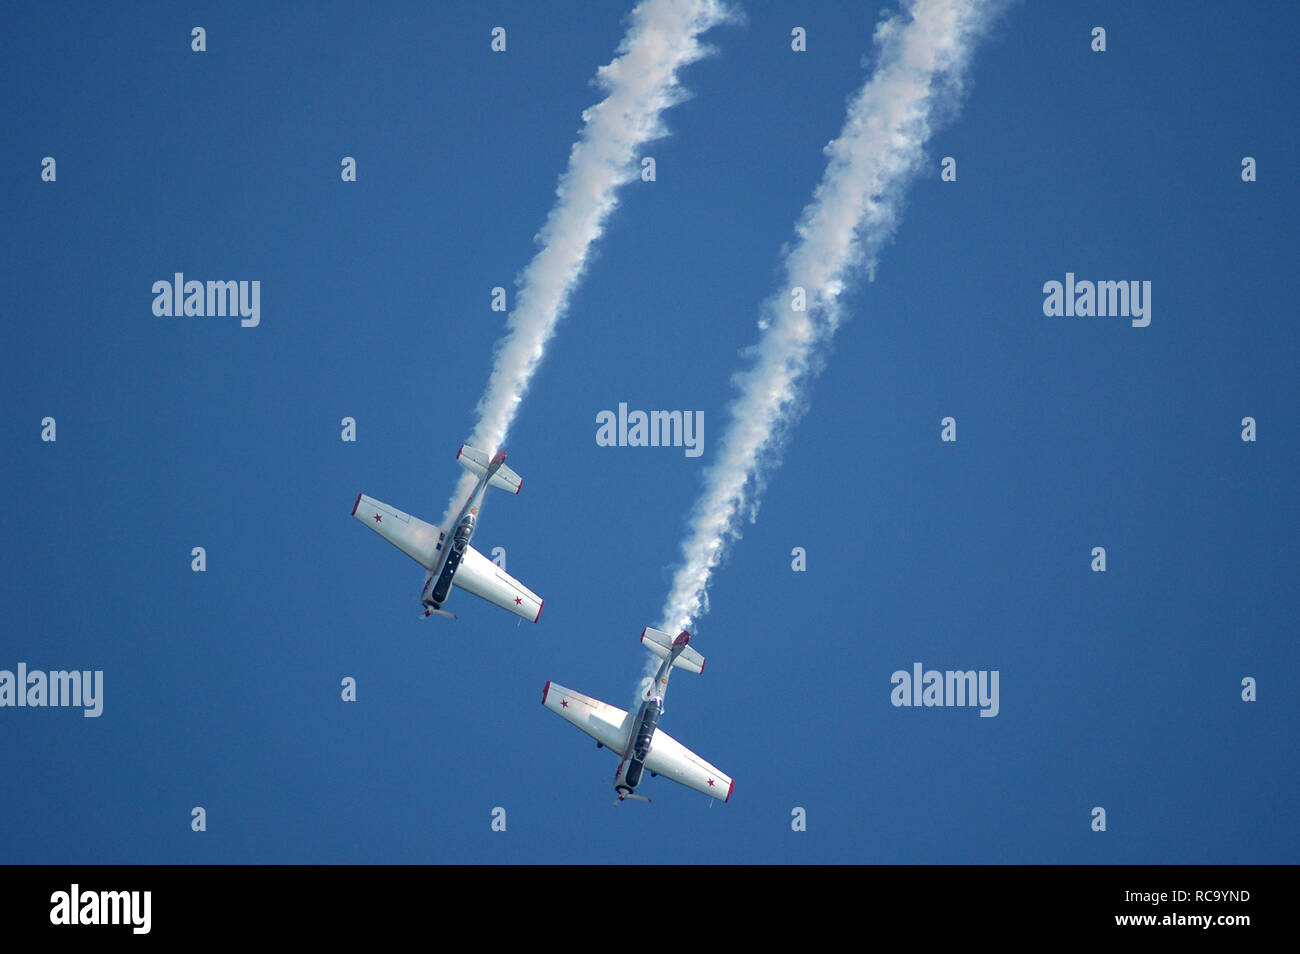 Yakovlevs Aerobatic Display team at Lifeboat Launch Day, Selsey. - Stock Image